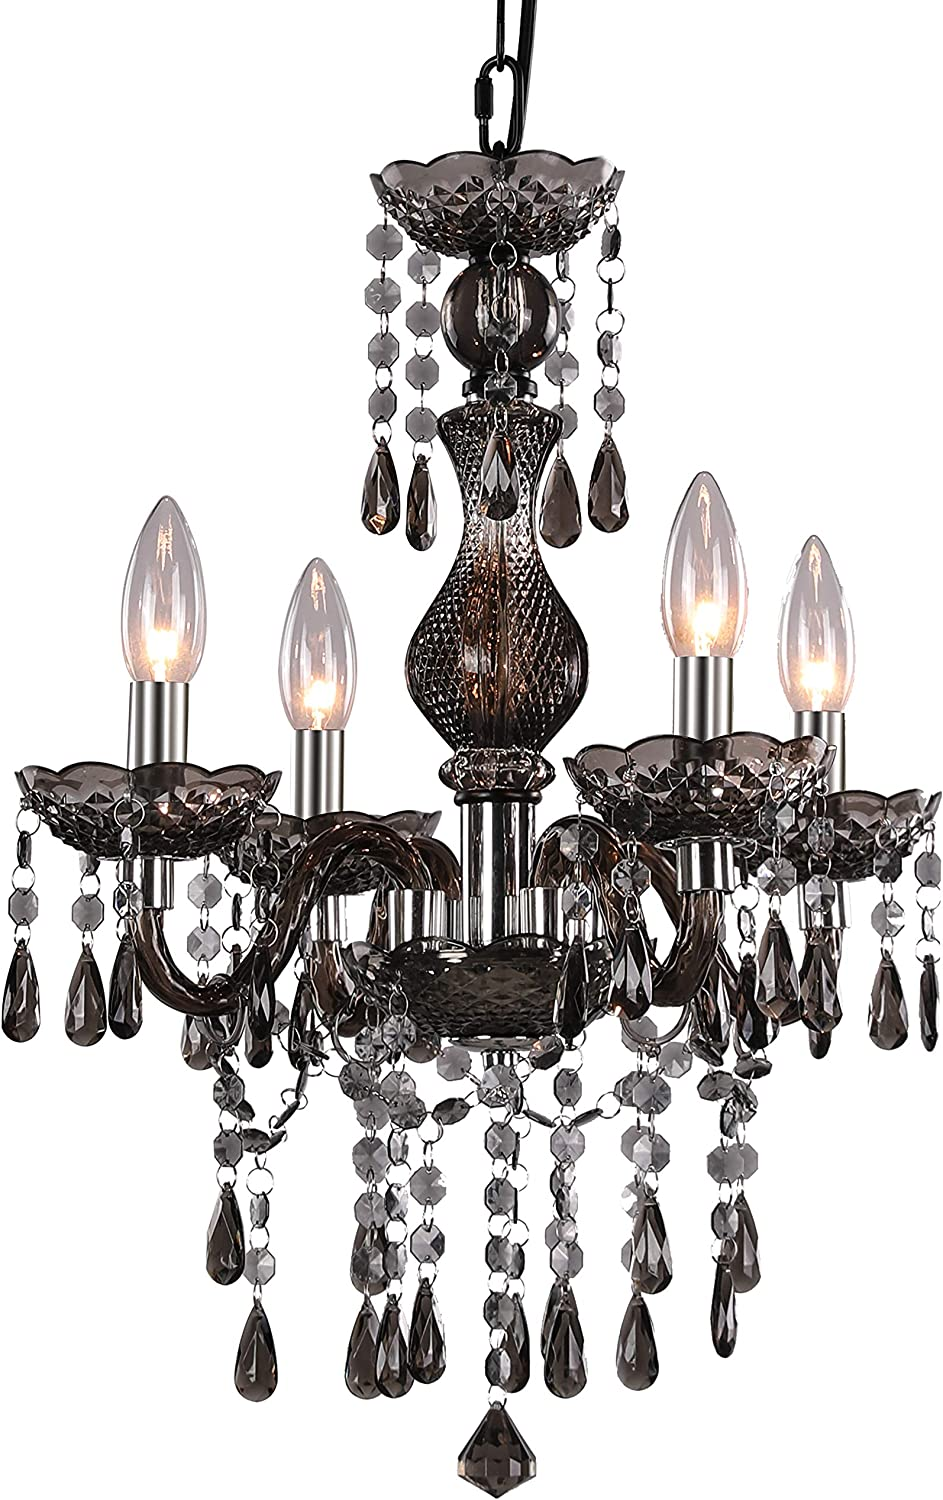 4-Light Branch Crystal Chandelier Mini Black Metal Chain Pendent Lamp Height Adjustable Acrylic Black Embedded Ceiling Lamp